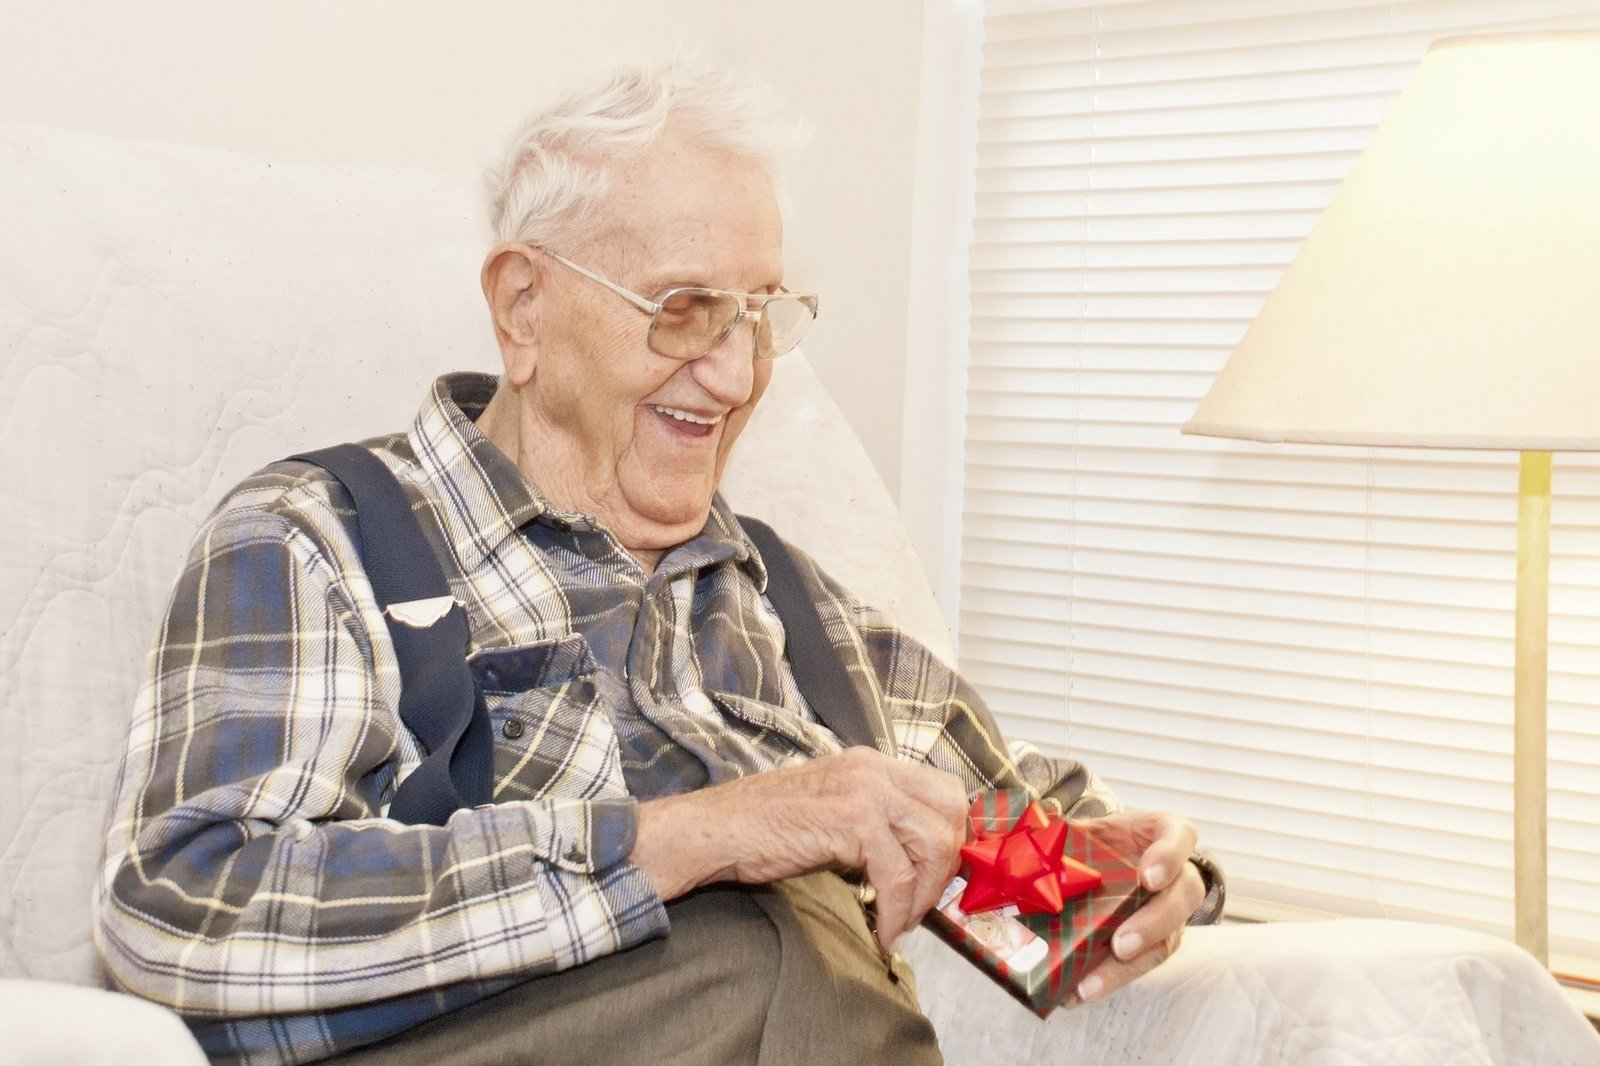 the best gifts for seniors in assisted living | asc blog